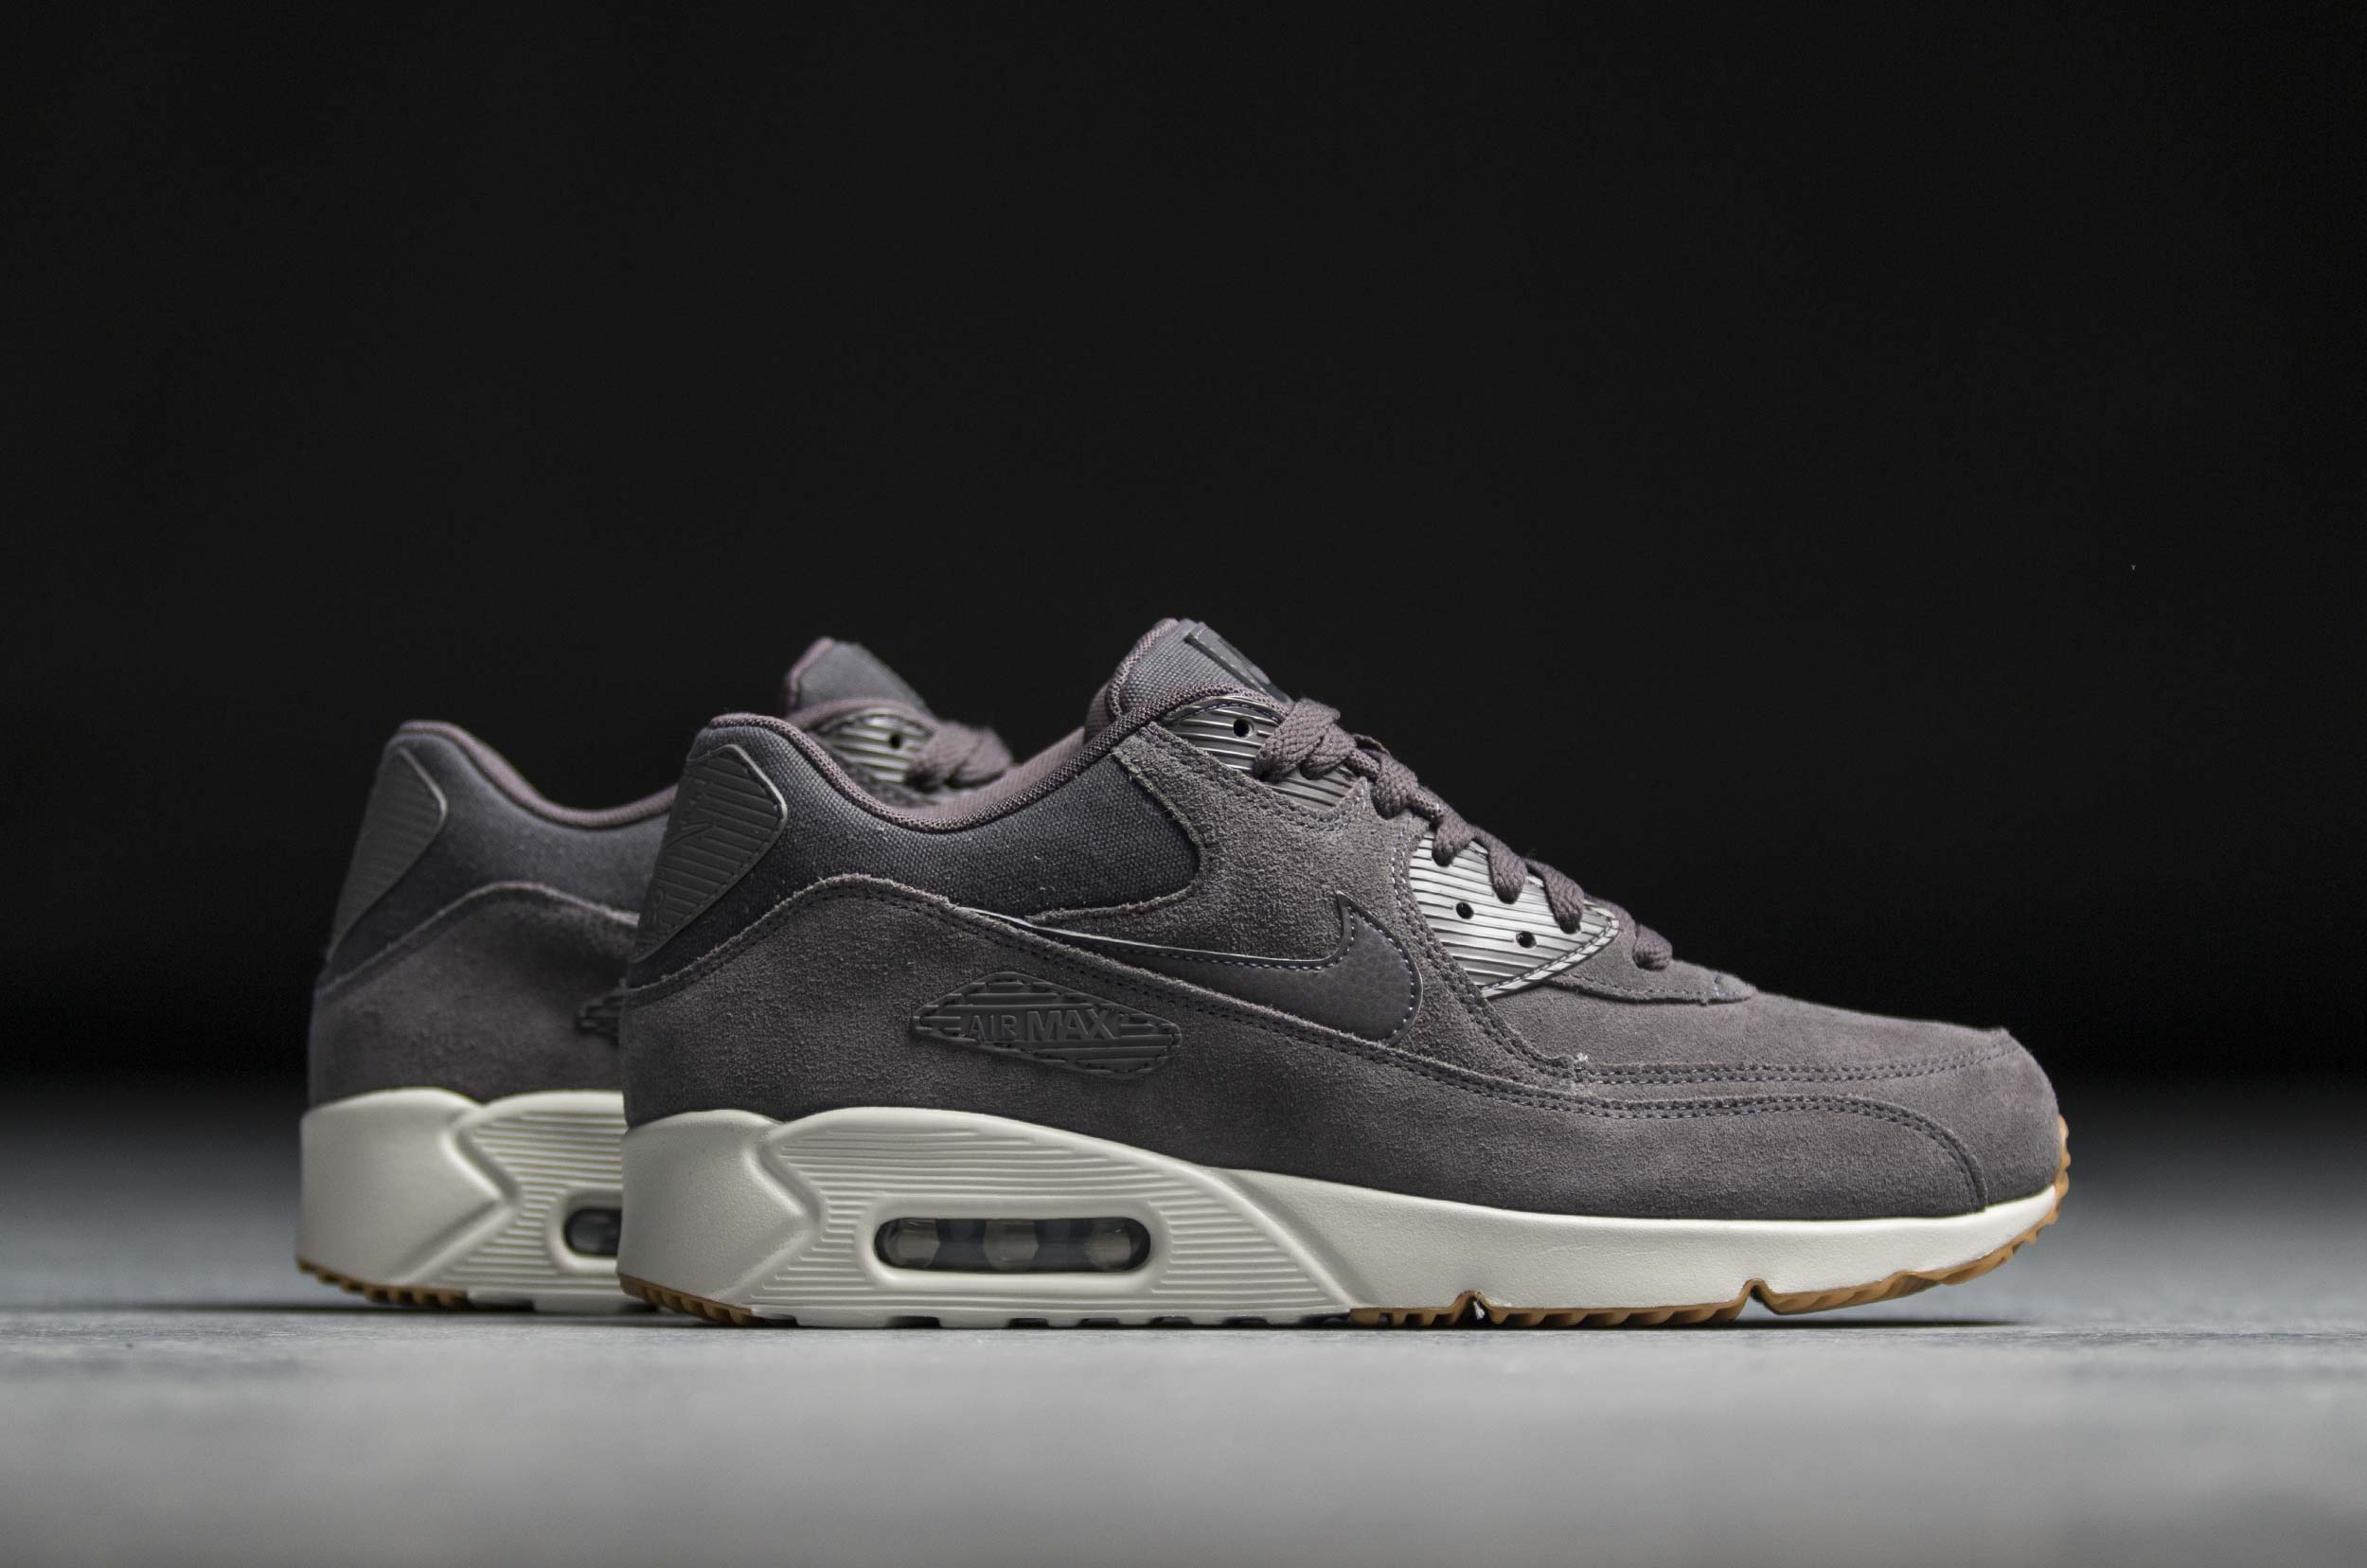 NIKE AIR MAX 90 ULTRA 2.0 LTR 924447-004 Ανθρακί